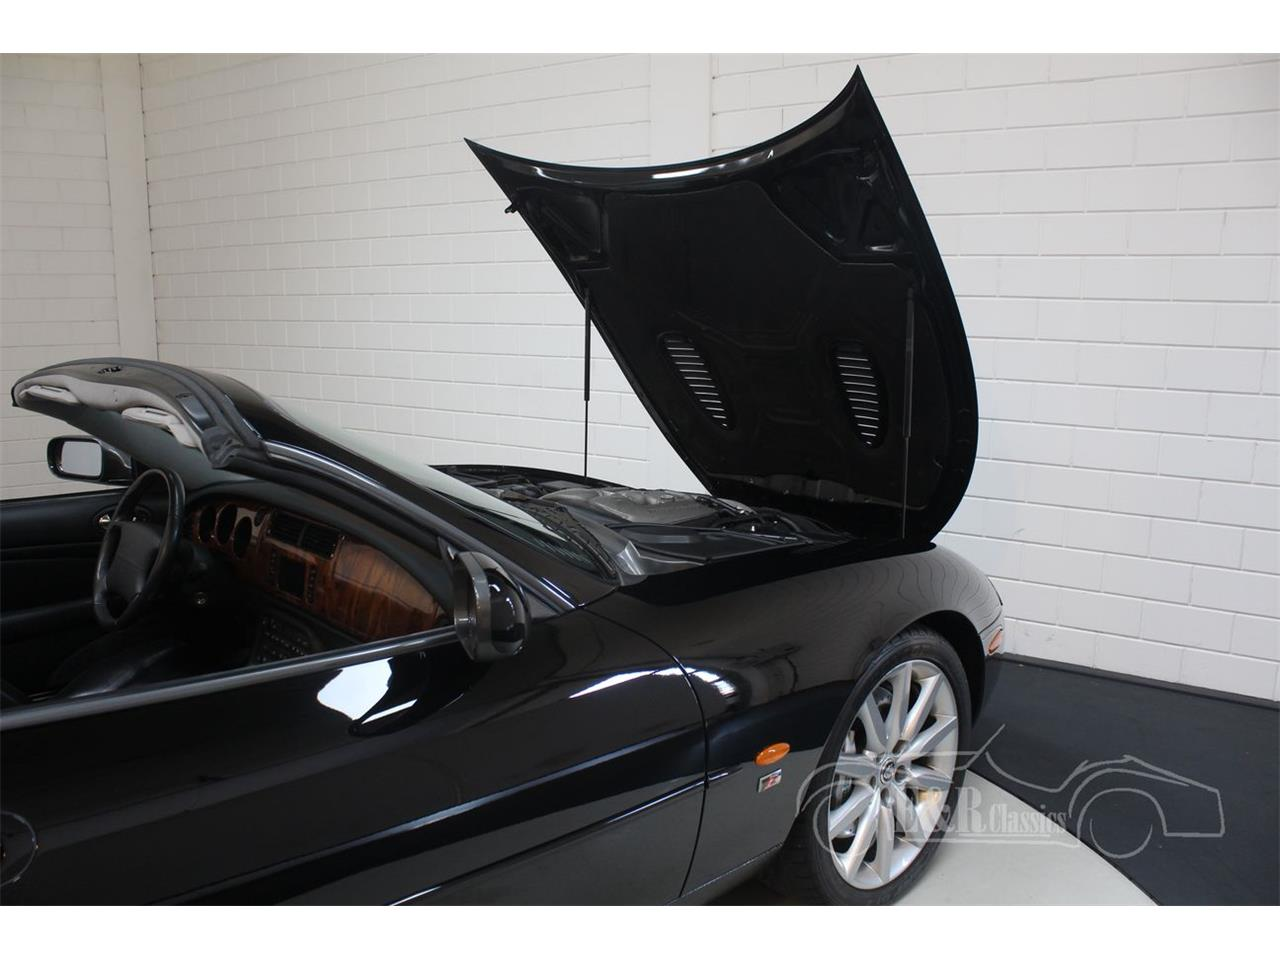 Large Picture of '03 XKR located in Waalwijk noord brabant - $39,200.00 - Q3GE